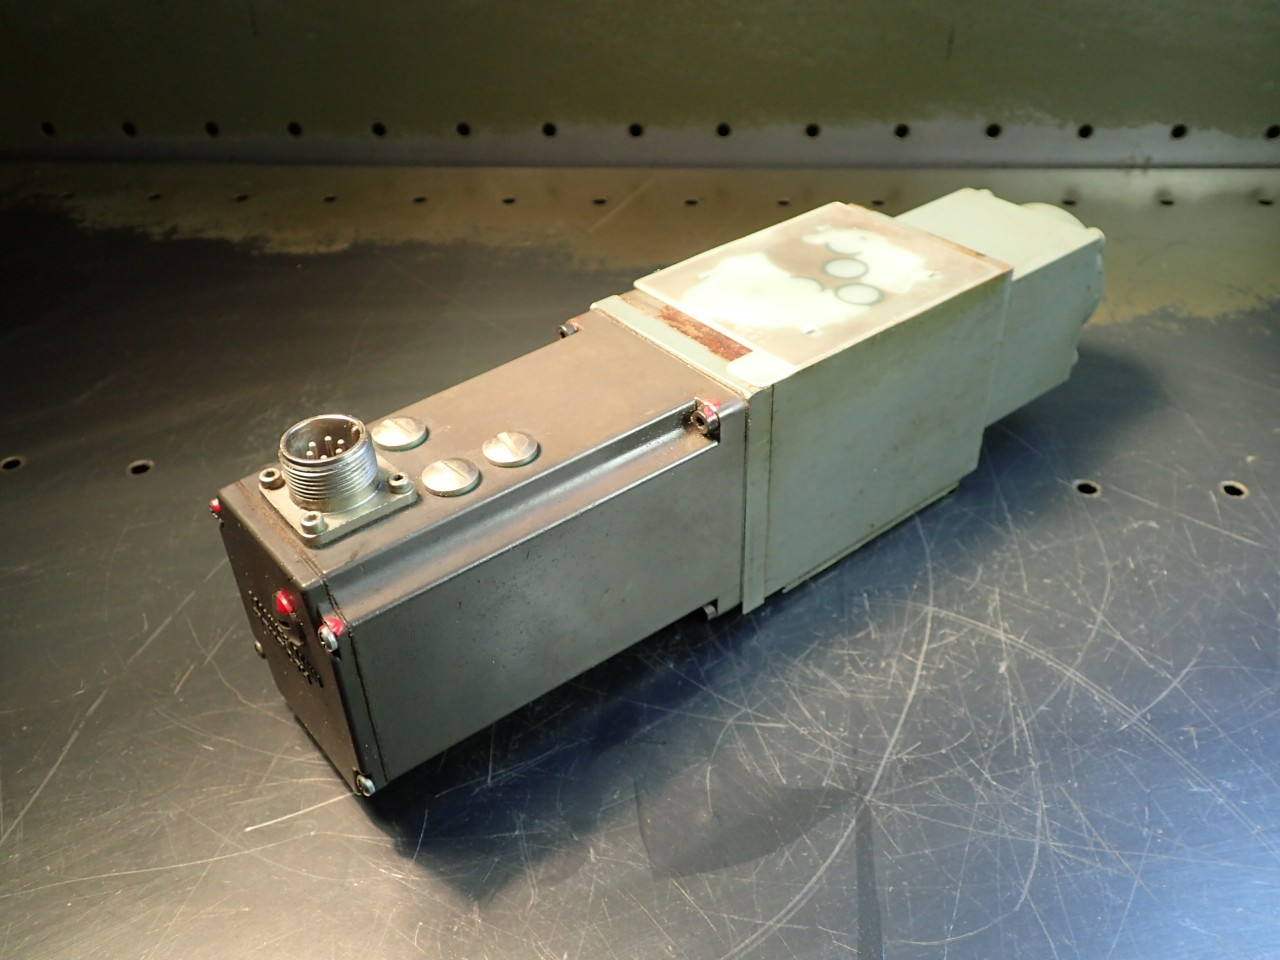 Mannesmann Rexroth STW-0028-060-2-0 24V Solenoid Valve, Used in Good Condition